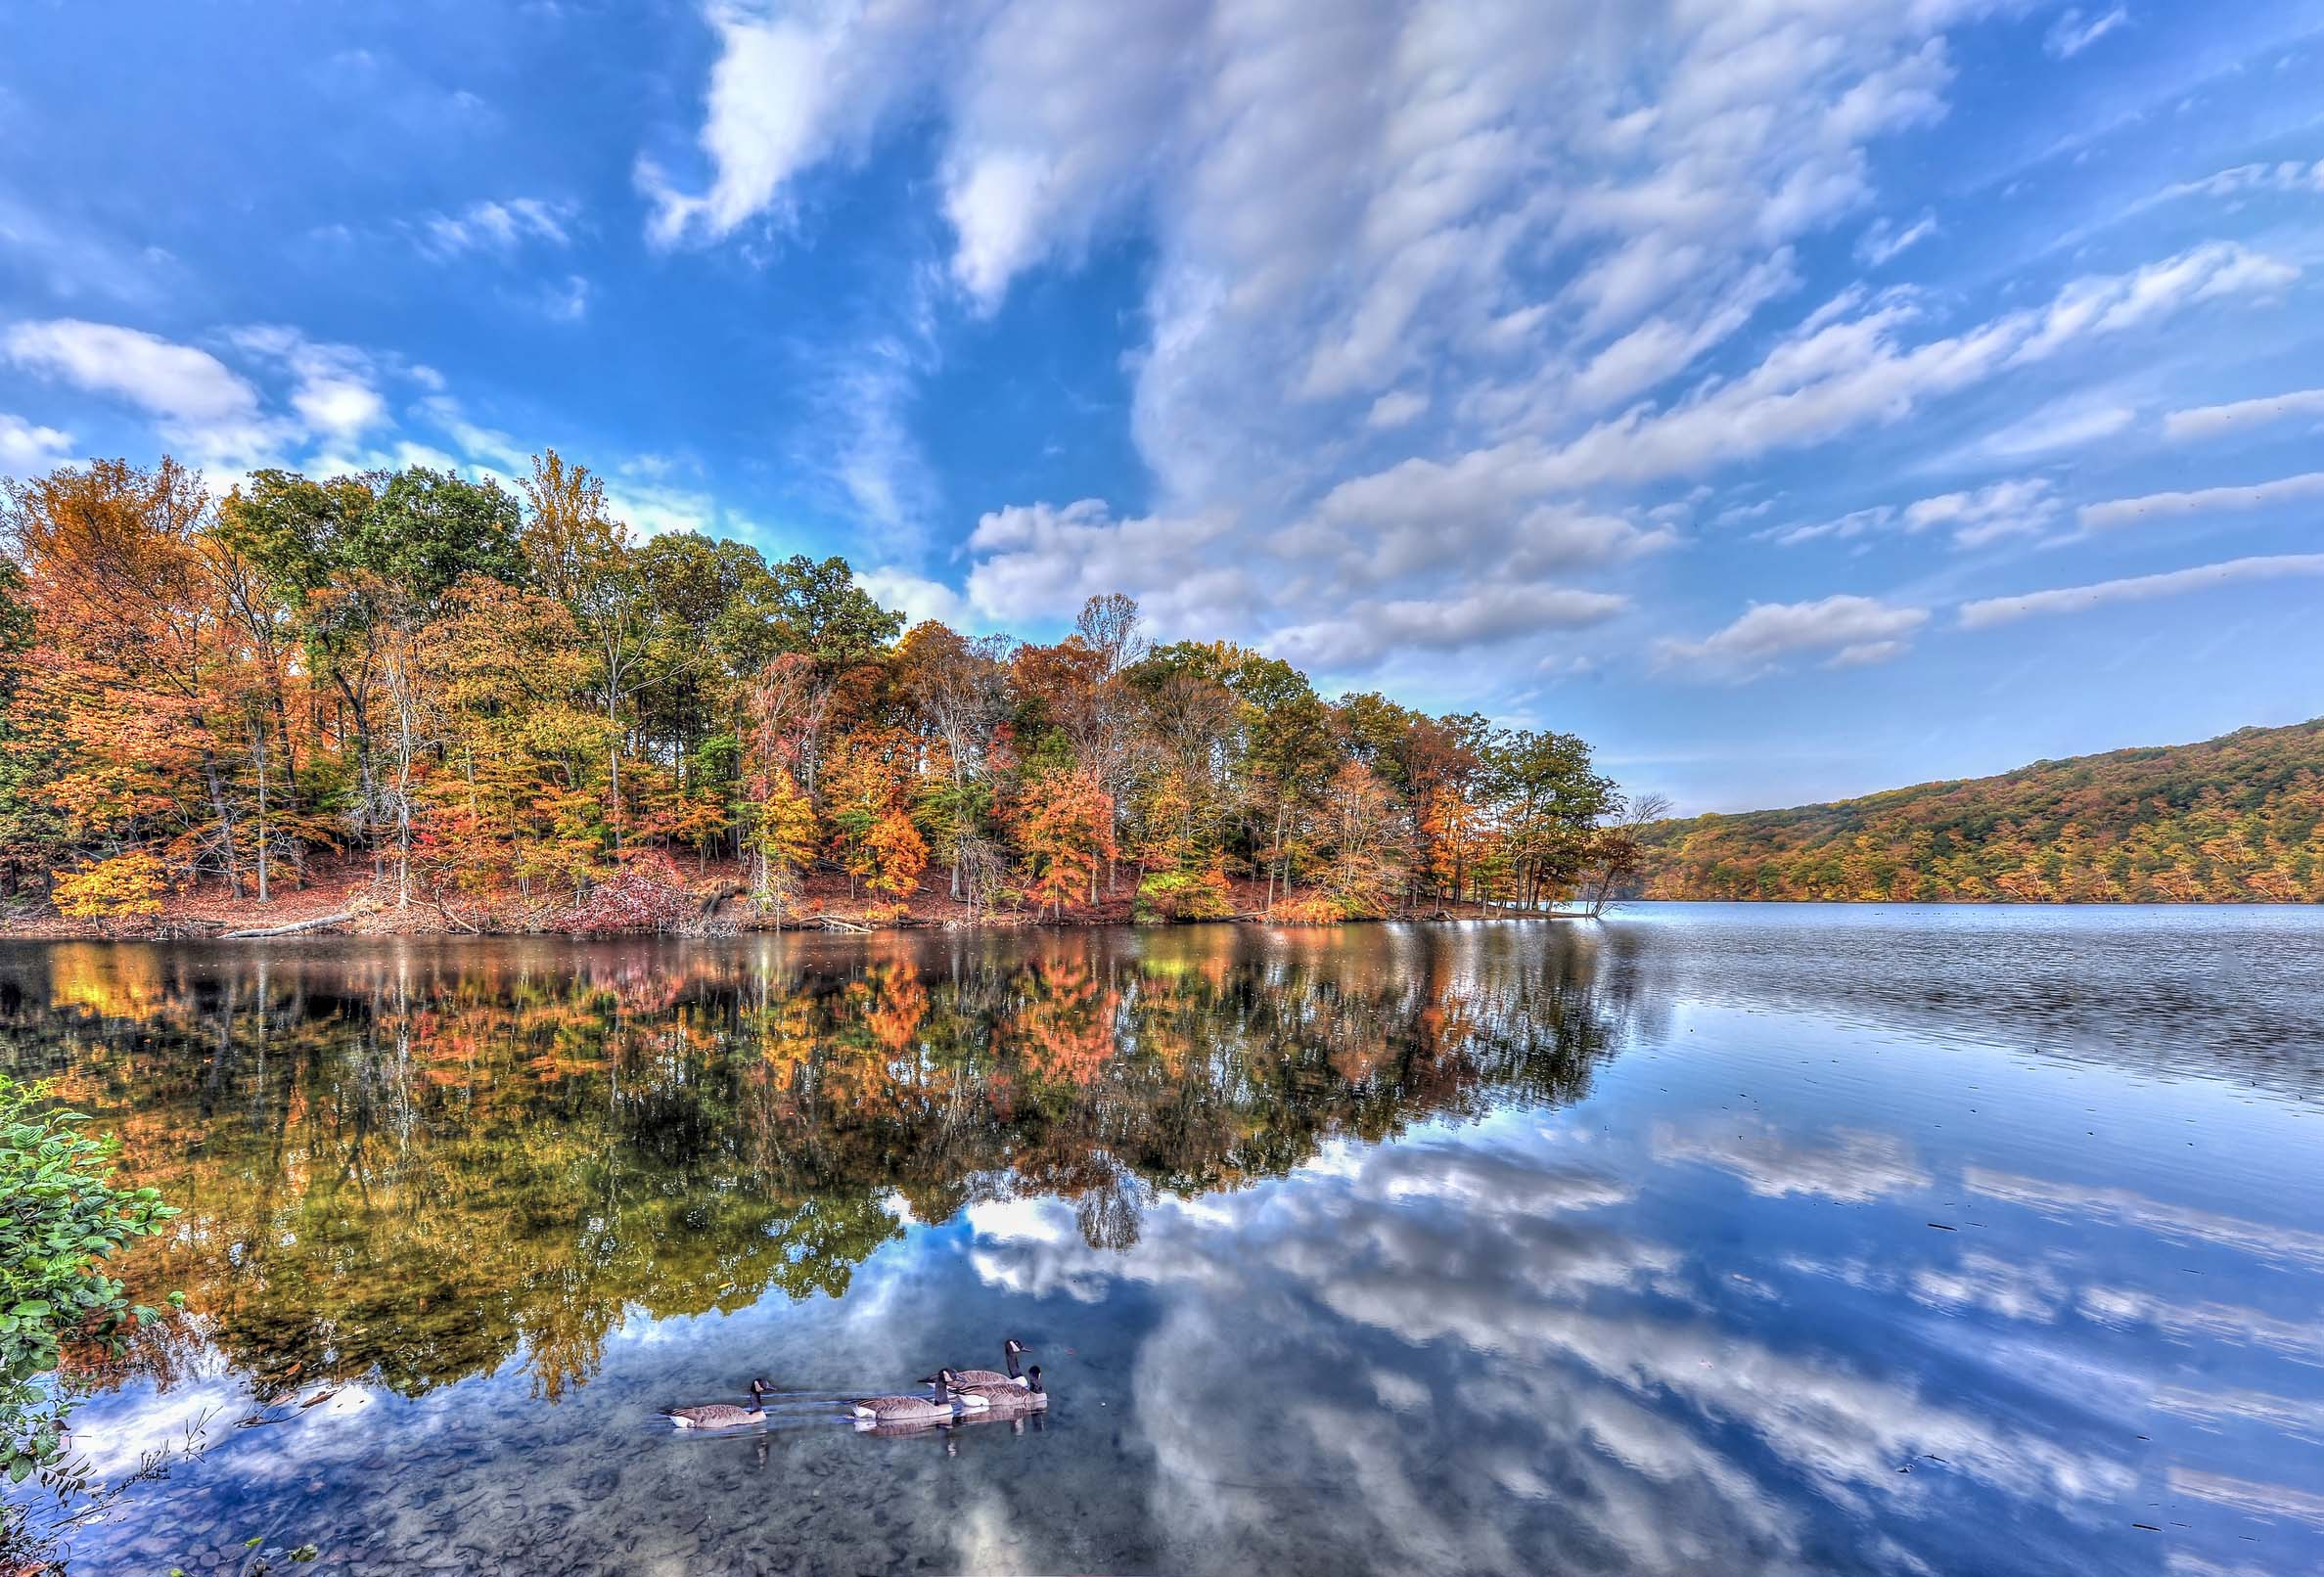 Baltimore's natural side —A shoreline crowded with trees dappled with fall colors reflected on the water.